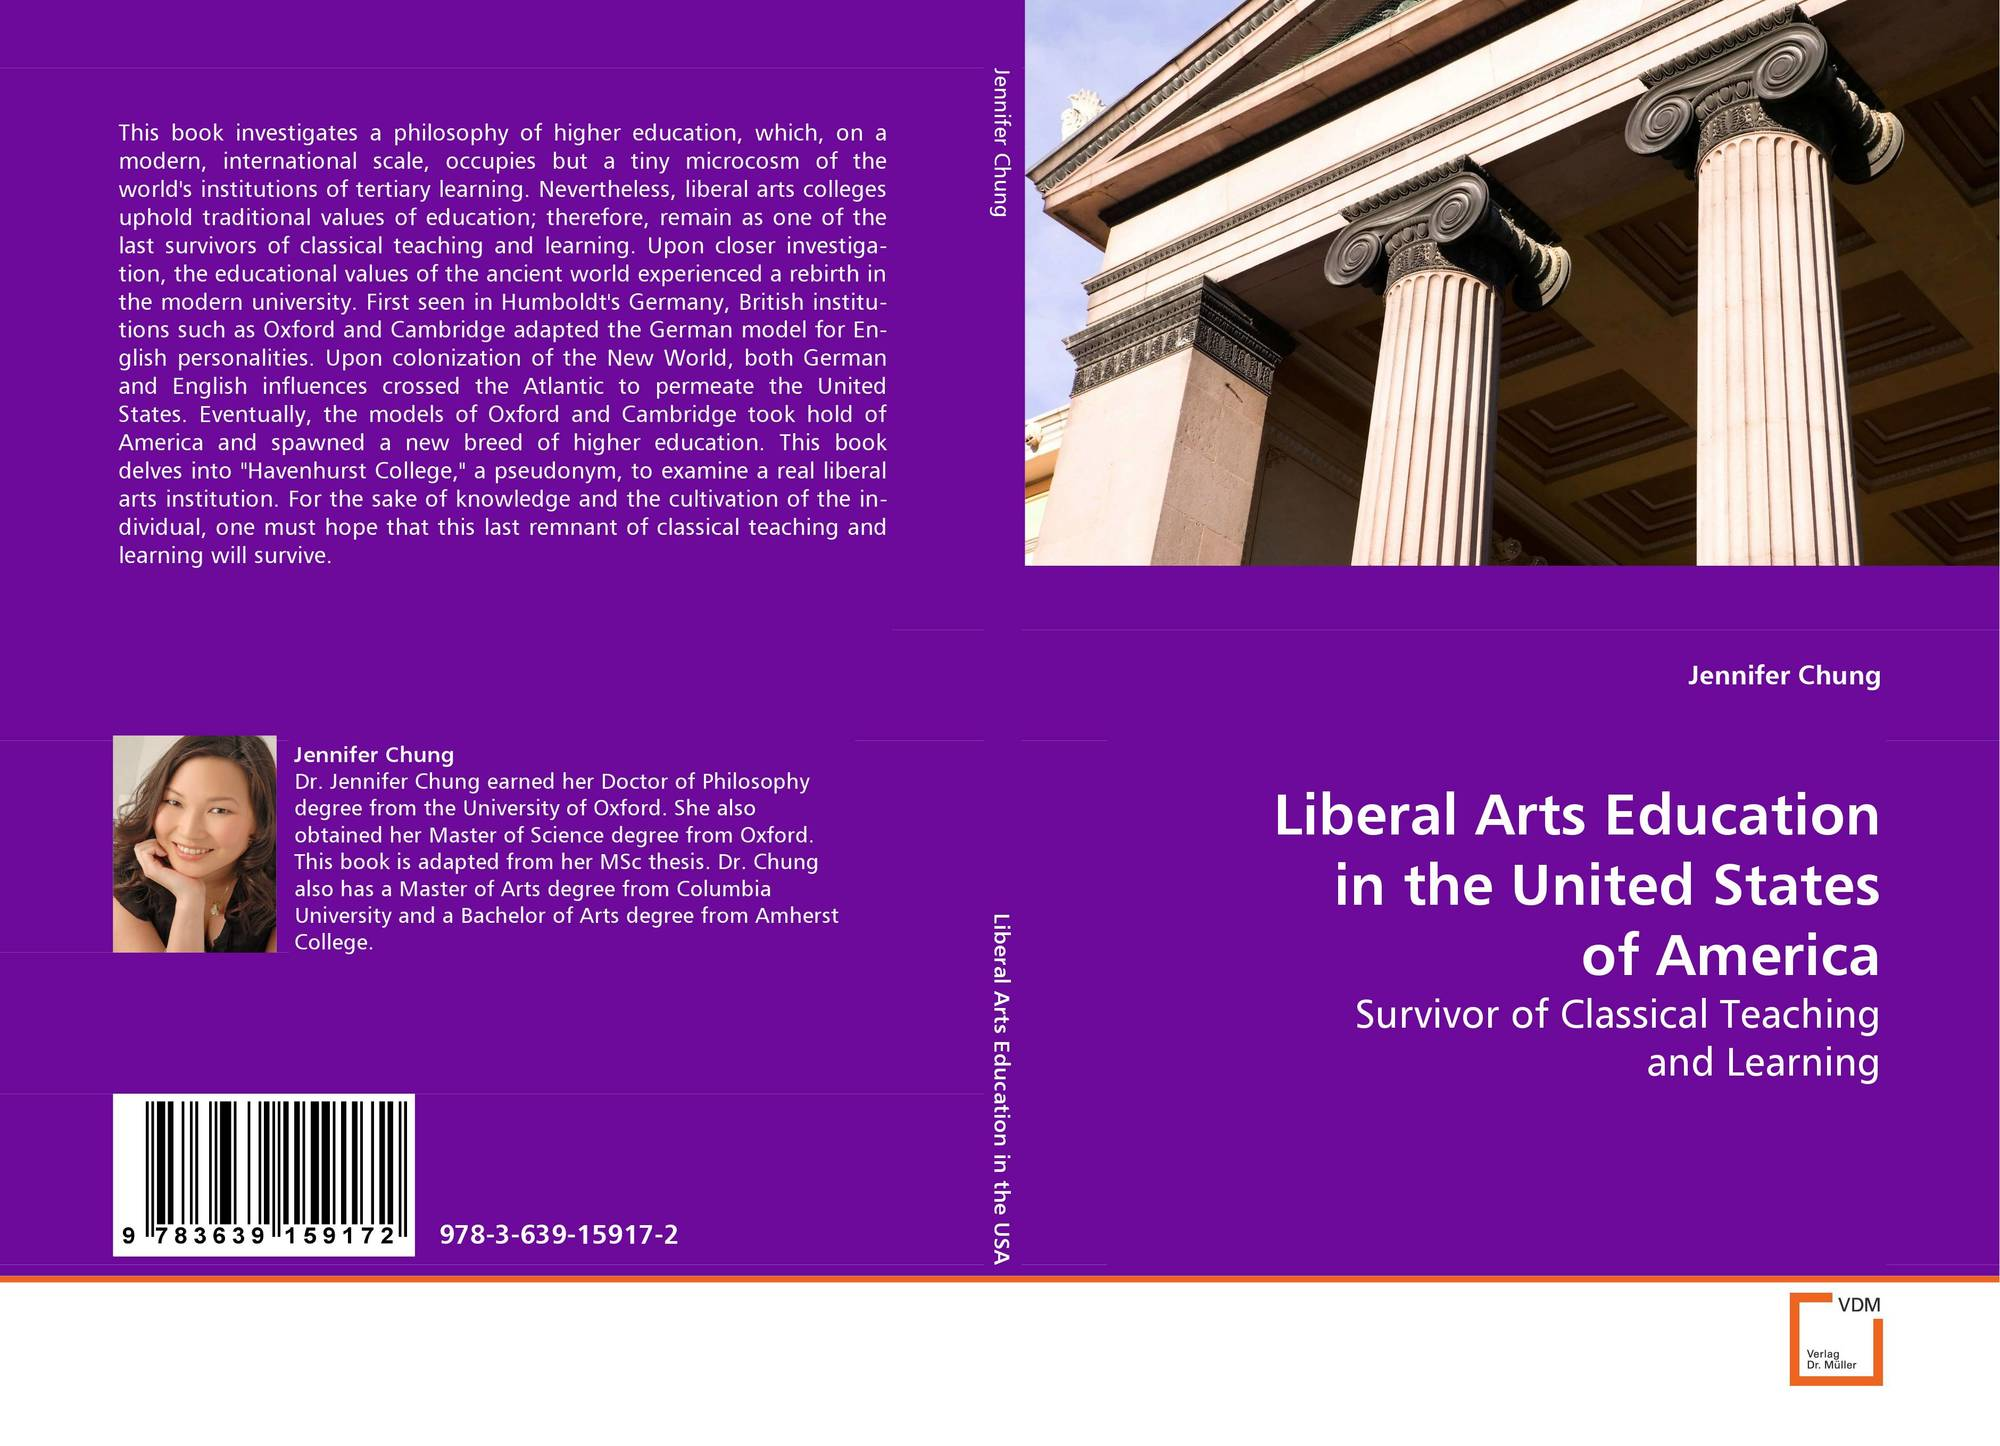 an analysis of the issues of the educational system in the united states Education in america is not as effective as it should be because of a number of problems inherent within the system because of the way issues of political and social differences have infiltrated educational policy and decision-making, students are not being offered a sound way of dealing with diversity or understanding how to manage differences.